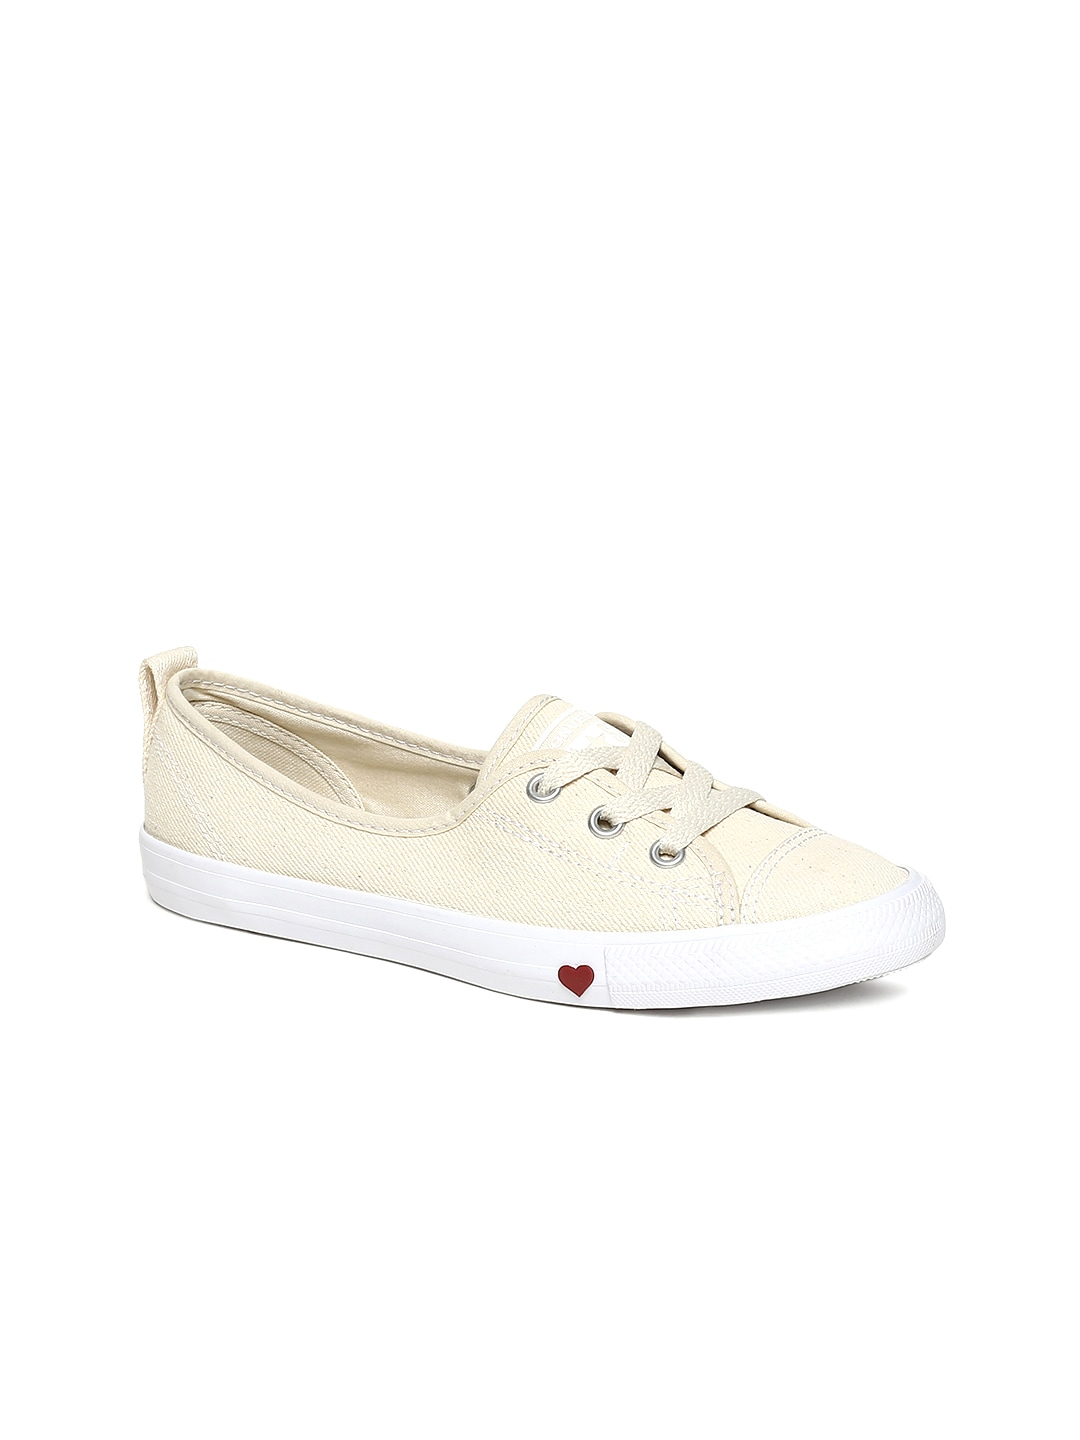 74b1d451208 Casual Shoes For Women - Buy Women's Casual Shoes Online from Myntra